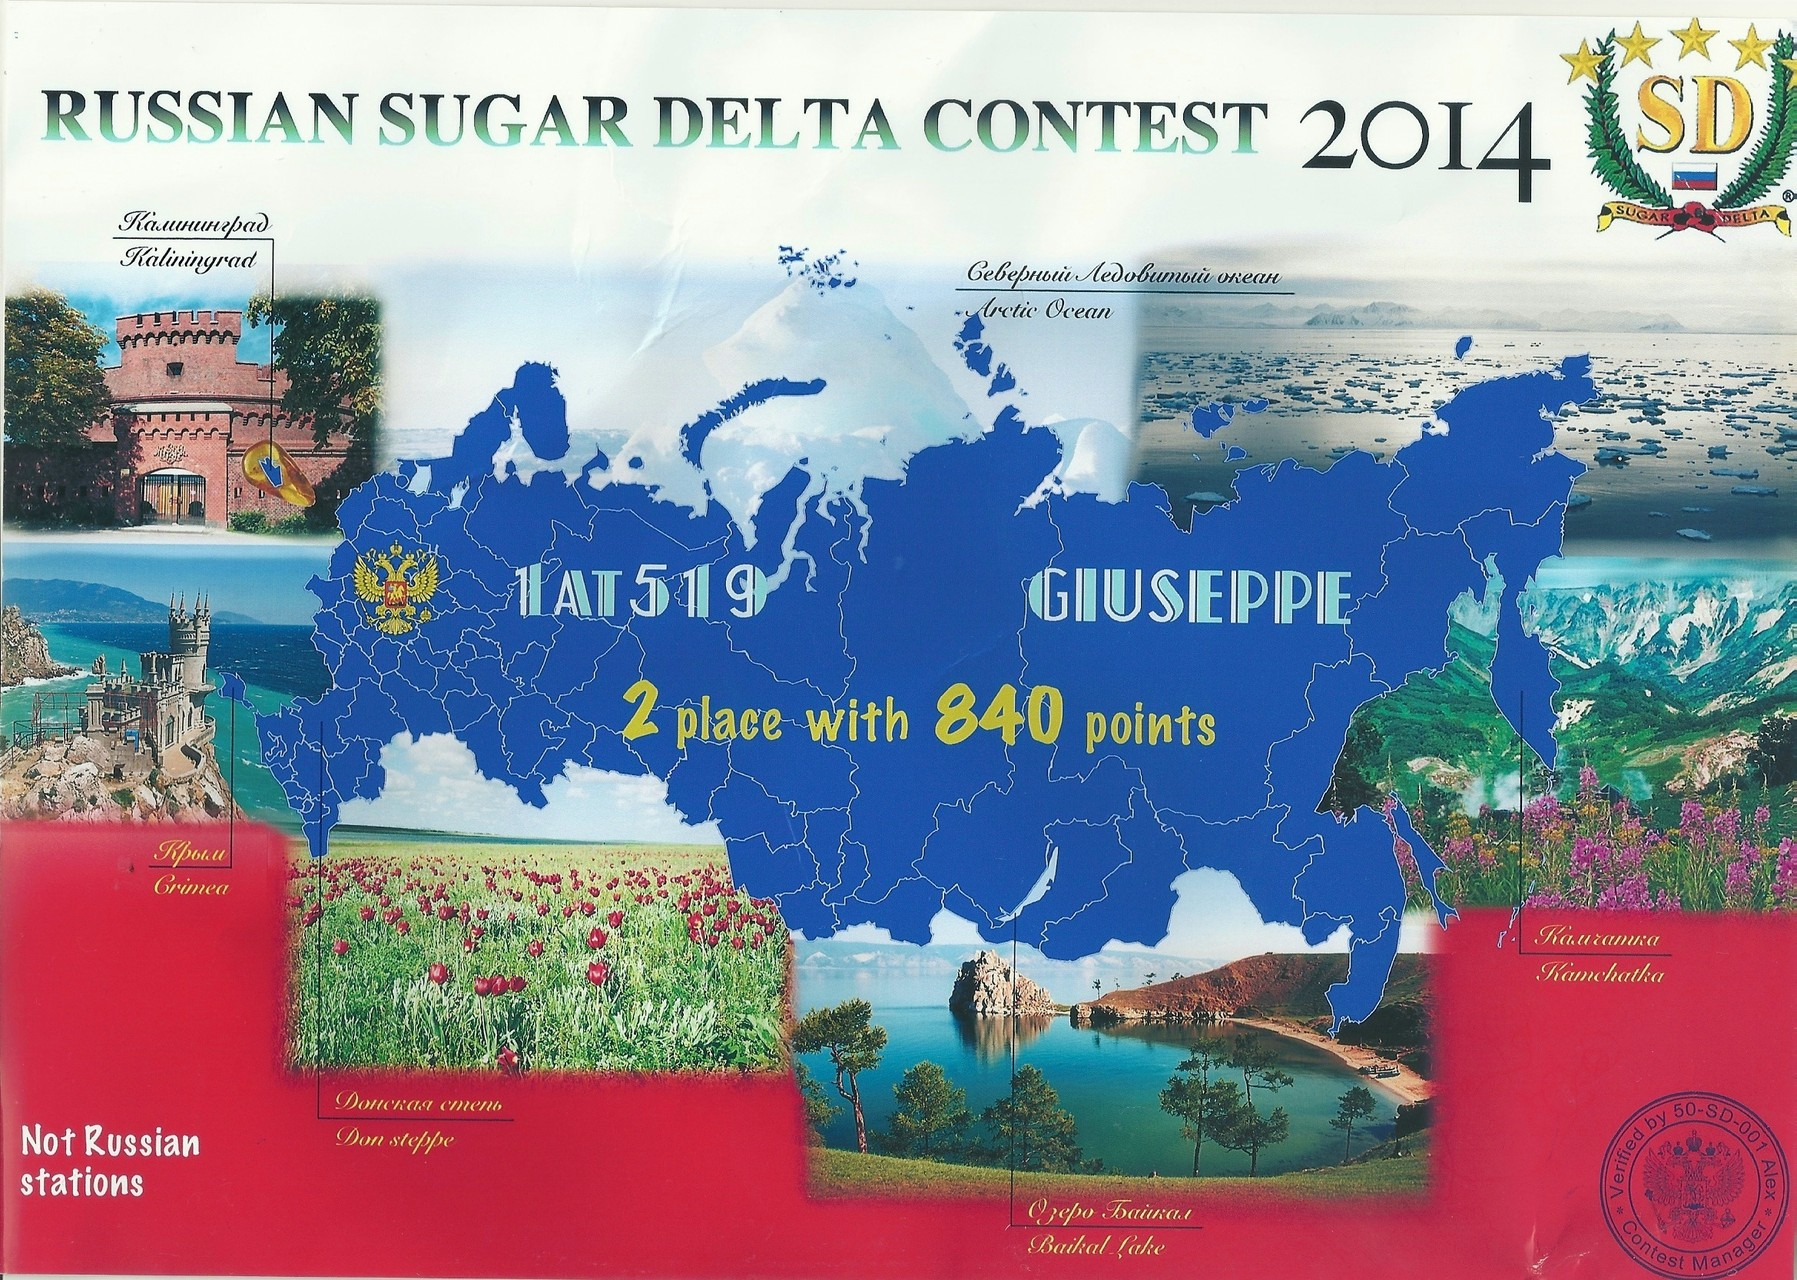 Russian SUGAR DELTA CONTEST 2014